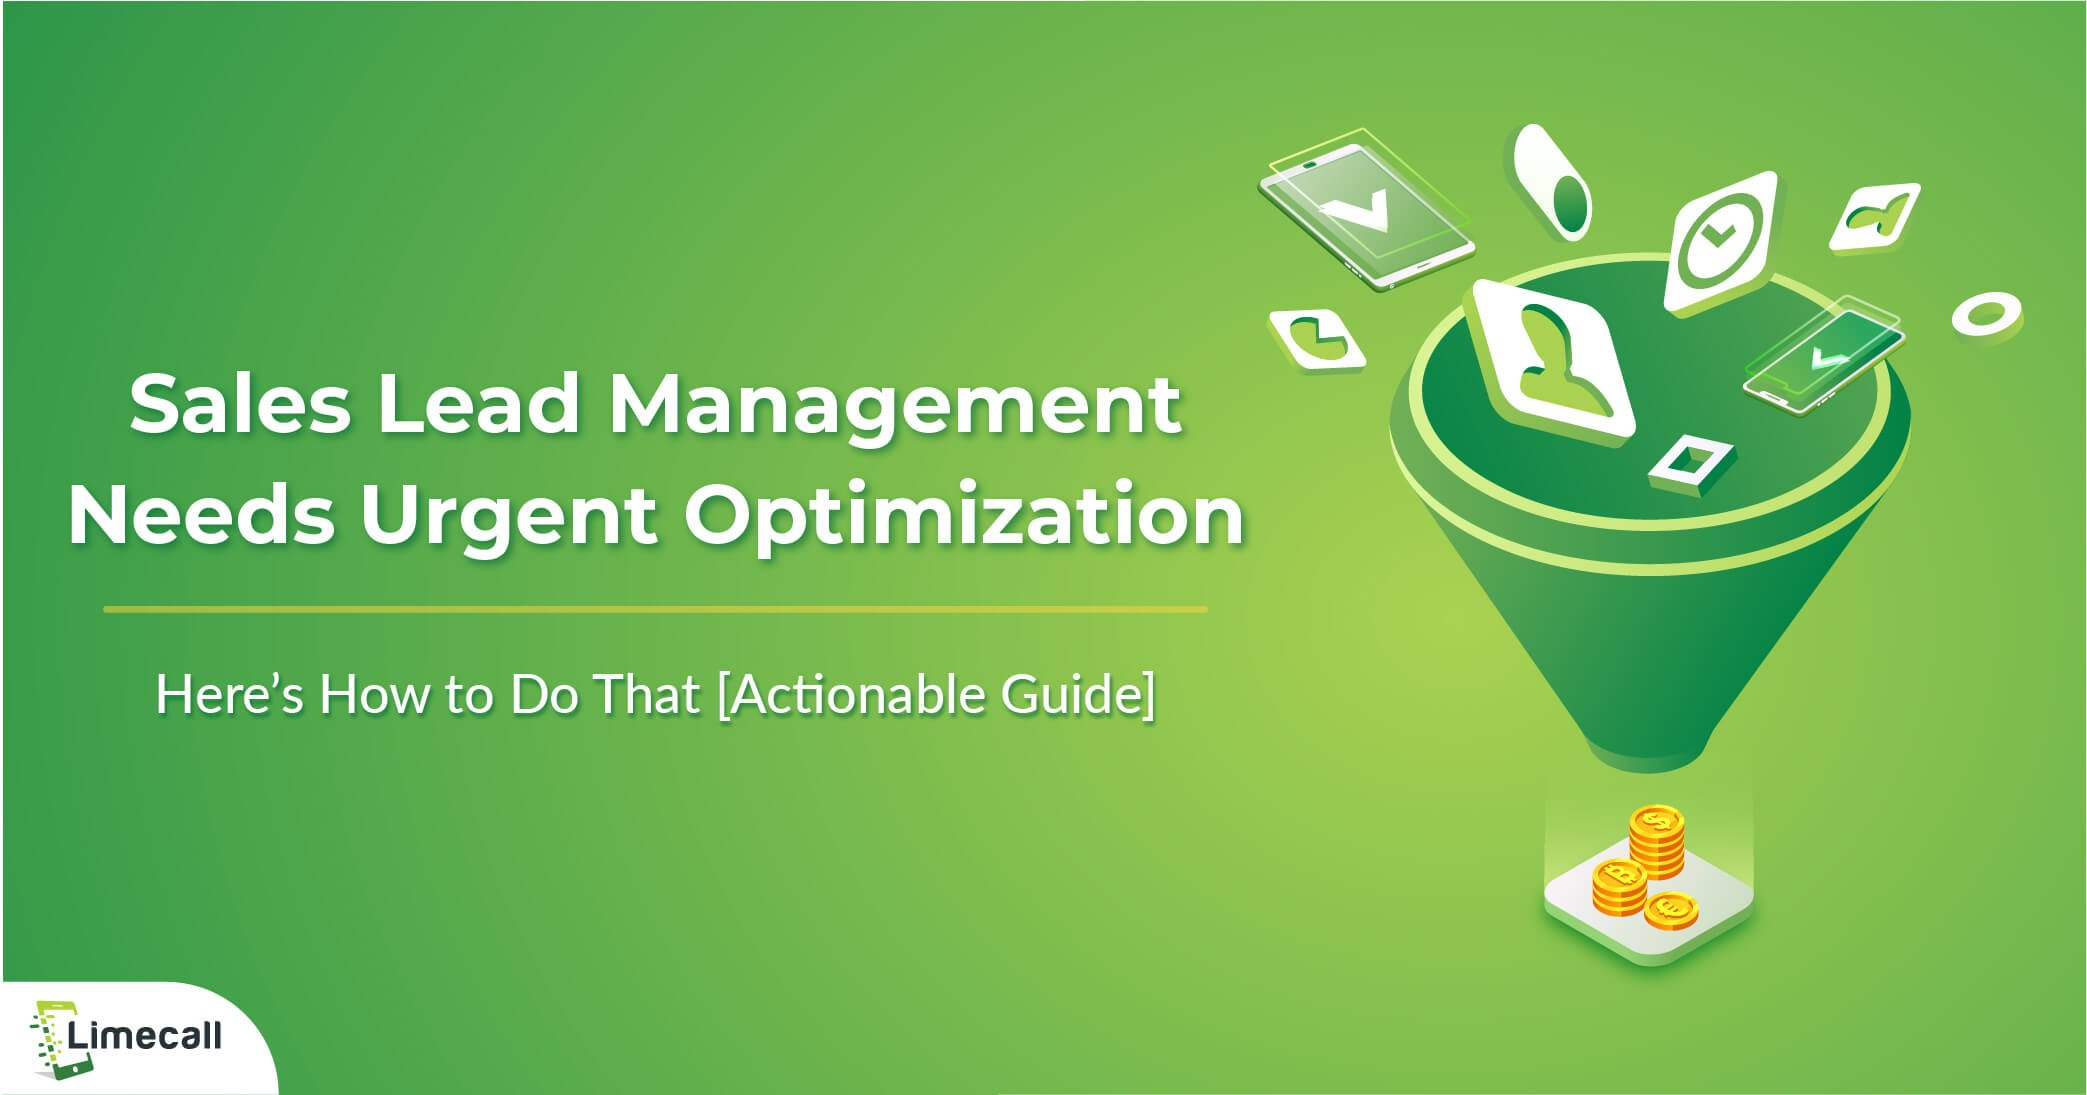 Sales Lead Management Needs Urgent Optimization